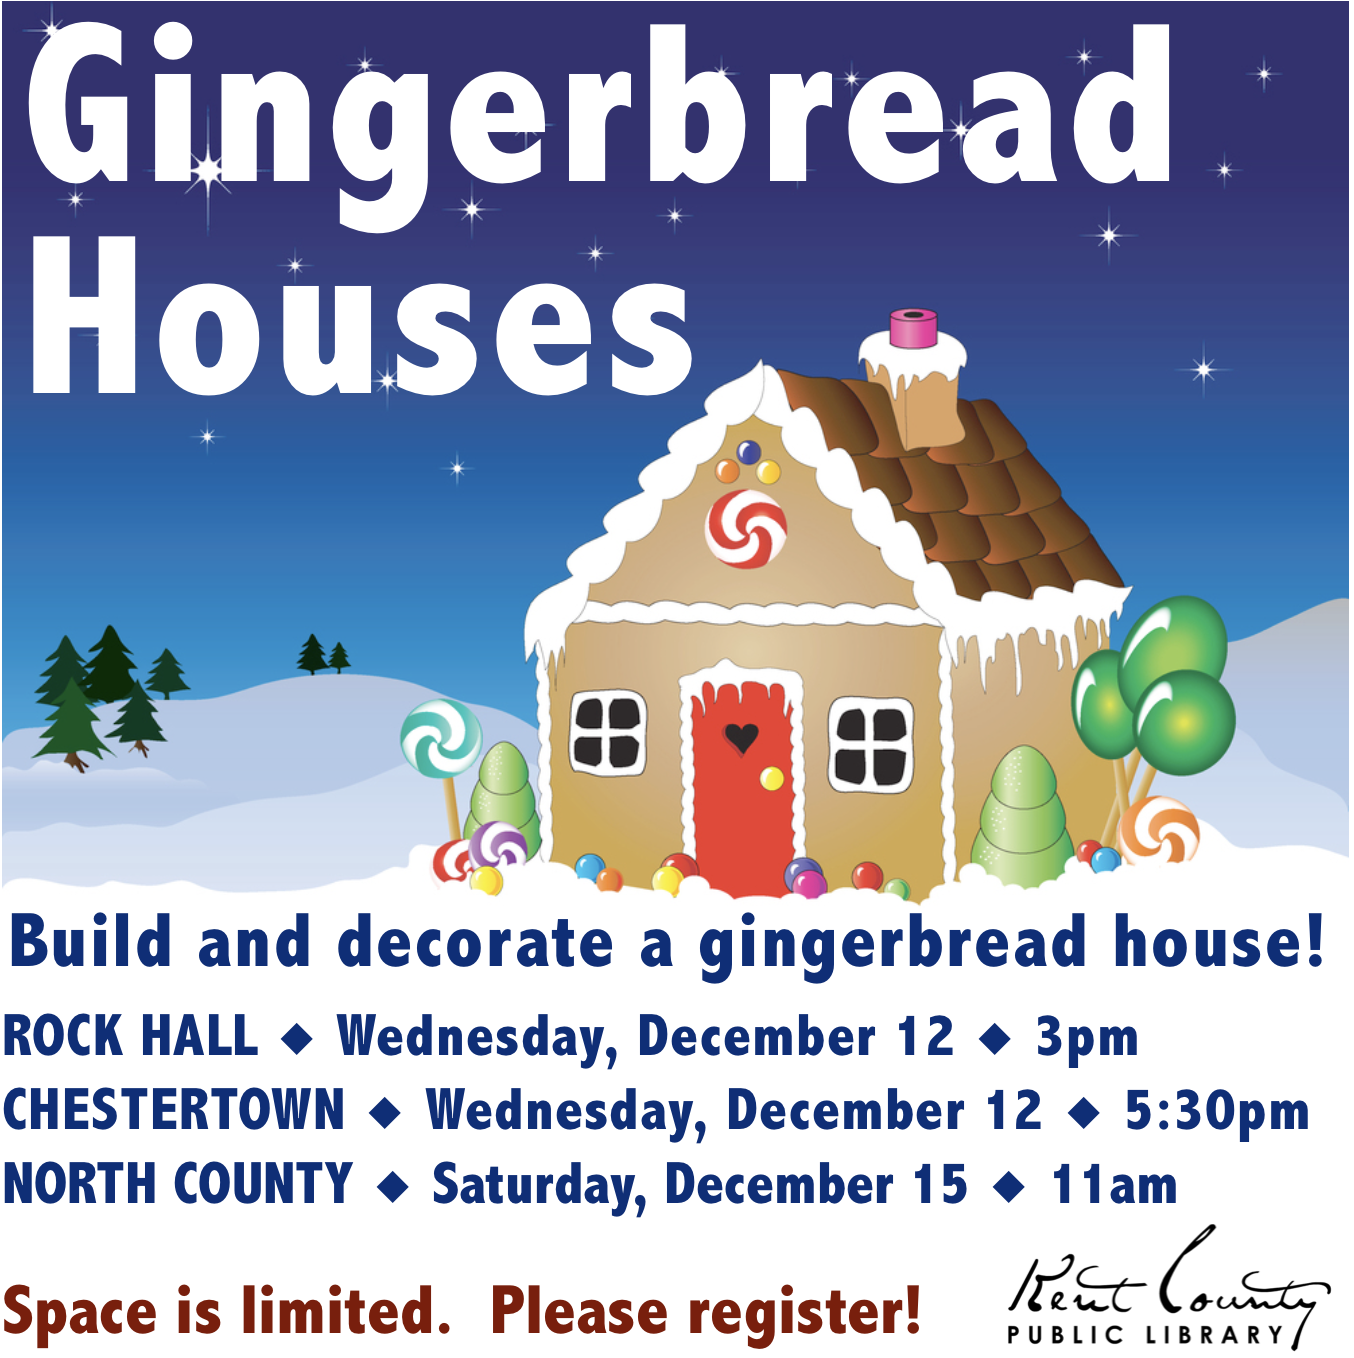 Gingerbread Houses in Chestertown